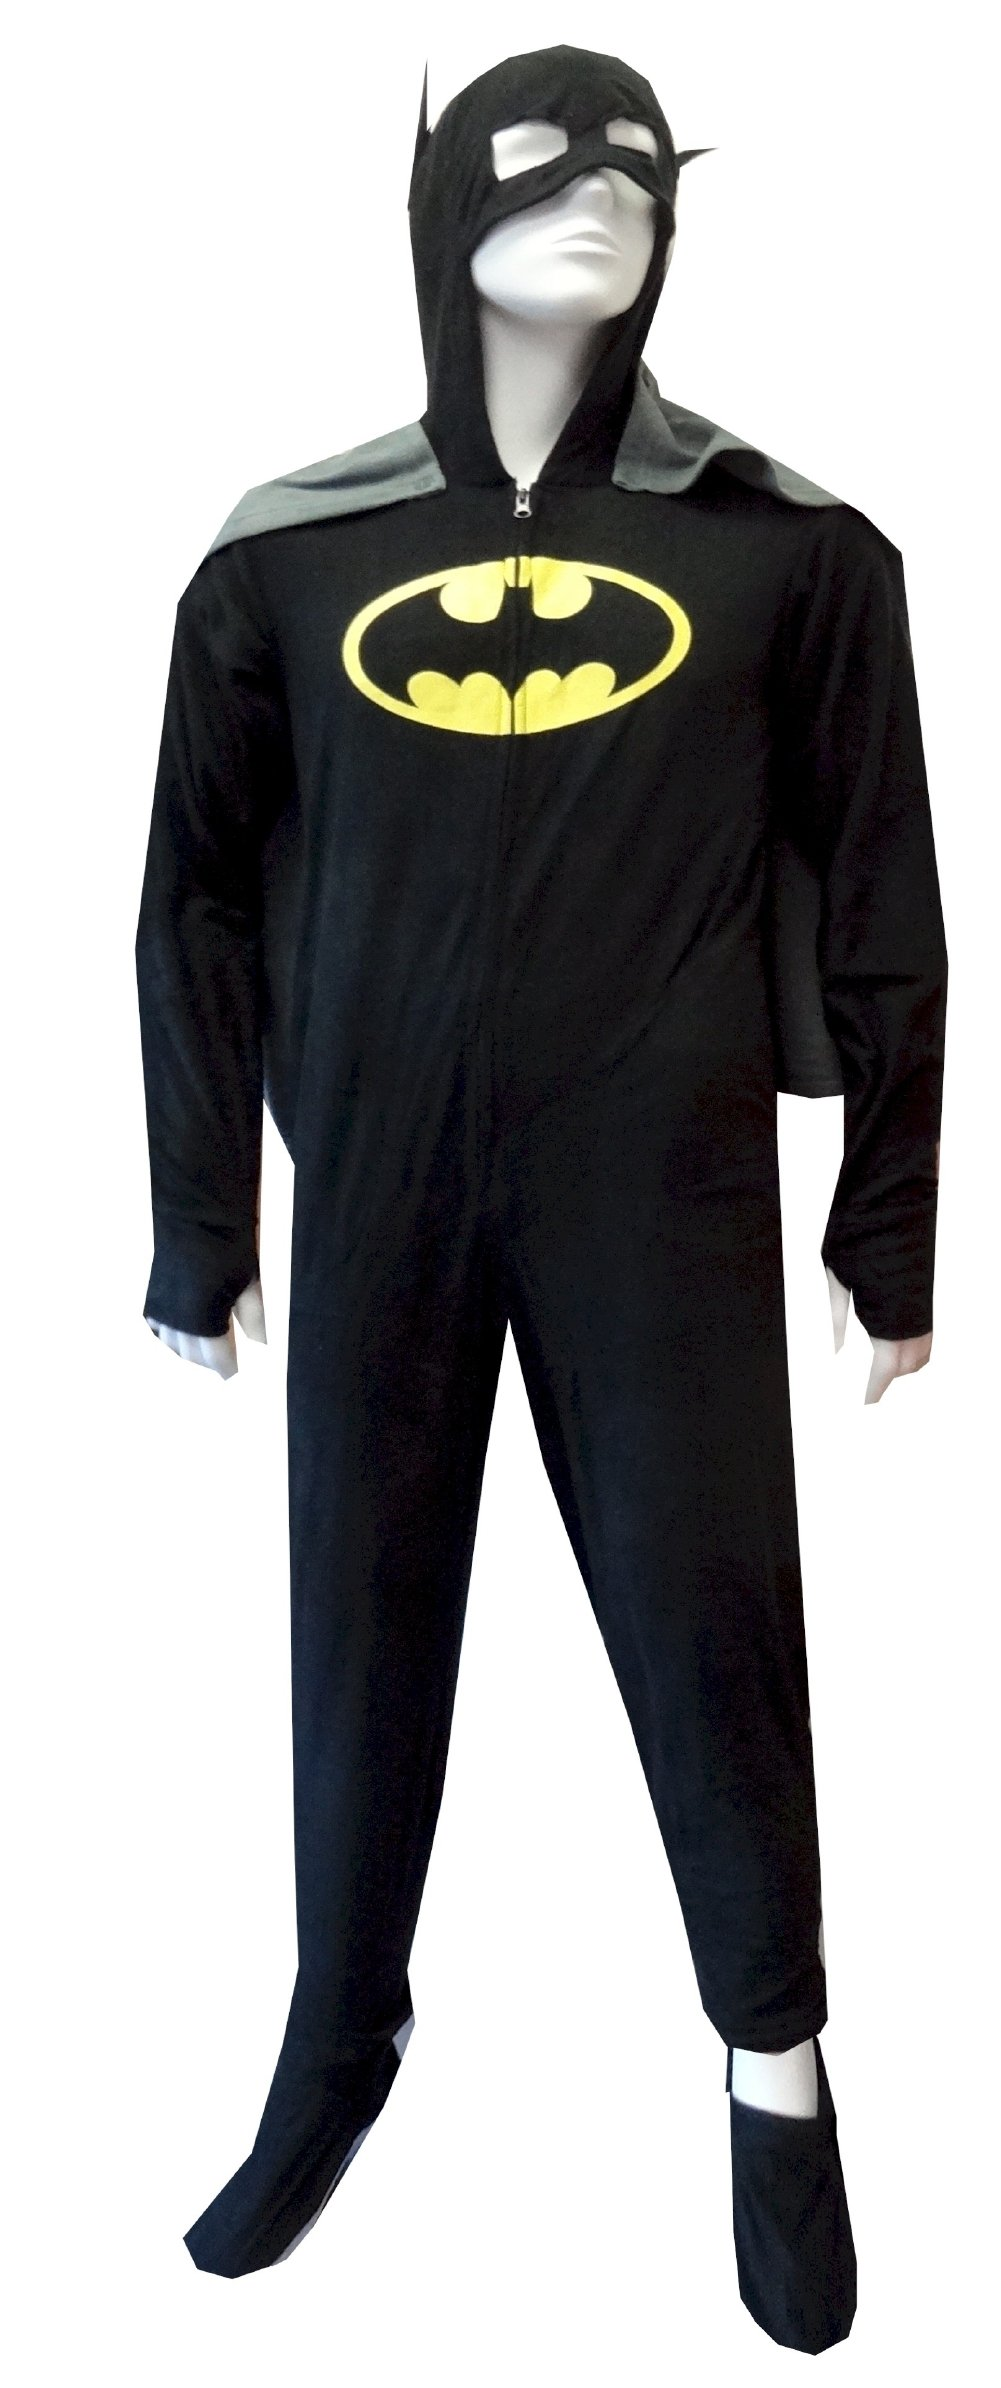 Batman/BatGirl Hooded Fleece One Piece Footie Pajama with Cape for men